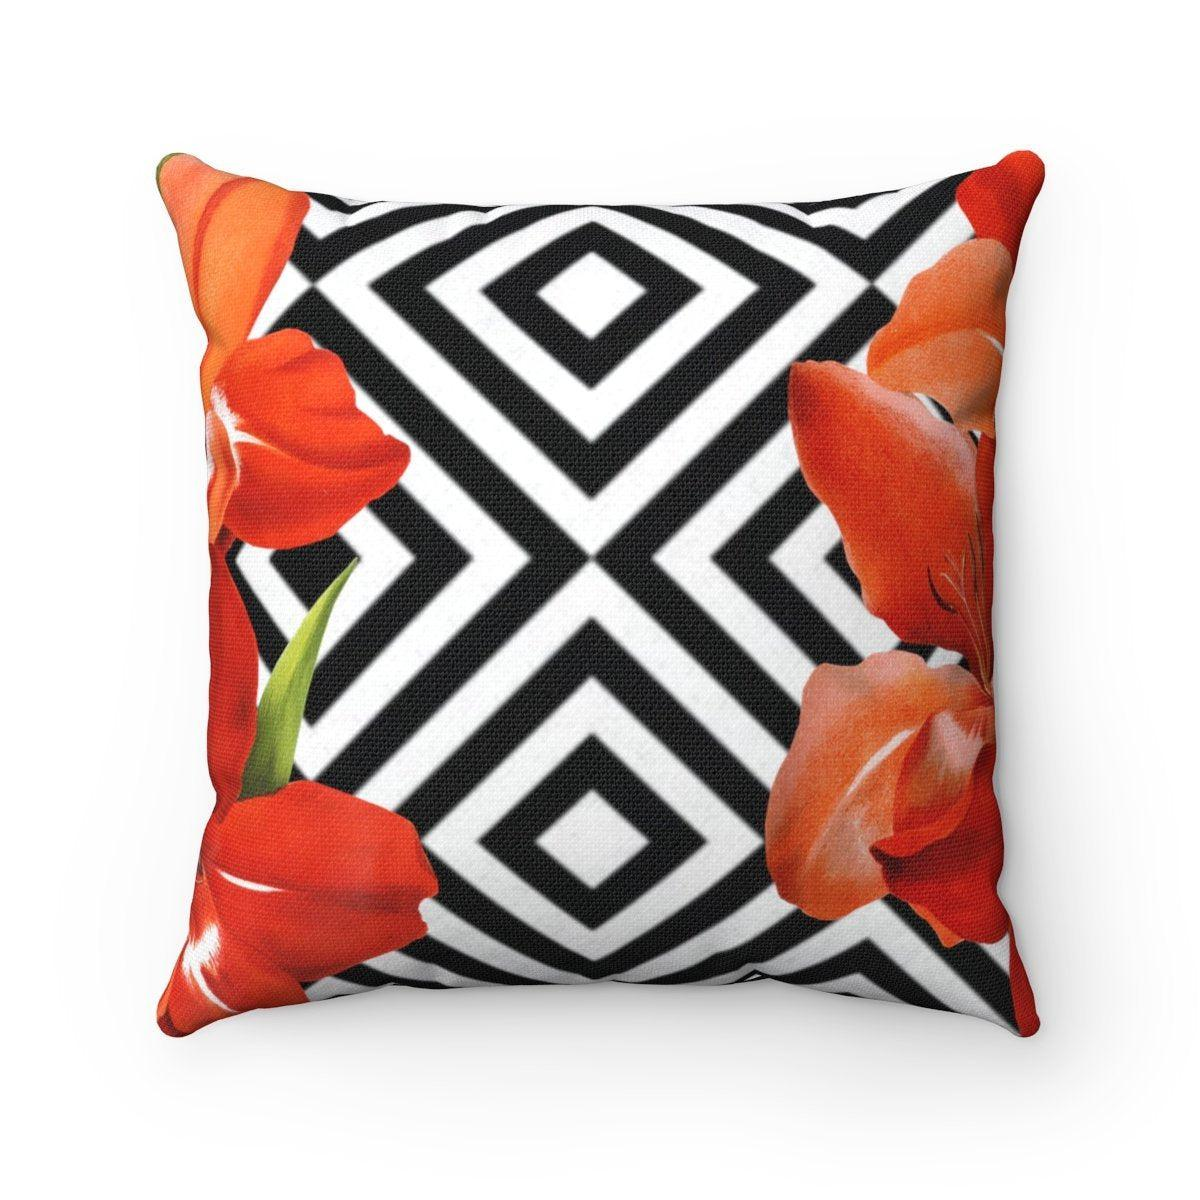 Luxury lilies | Floral abstract decorative cushion cover-Home Decor - Decorative Accents - Pillows & Throws - Decorative Pillows-Maison d'Elite-14x14-Très Elite